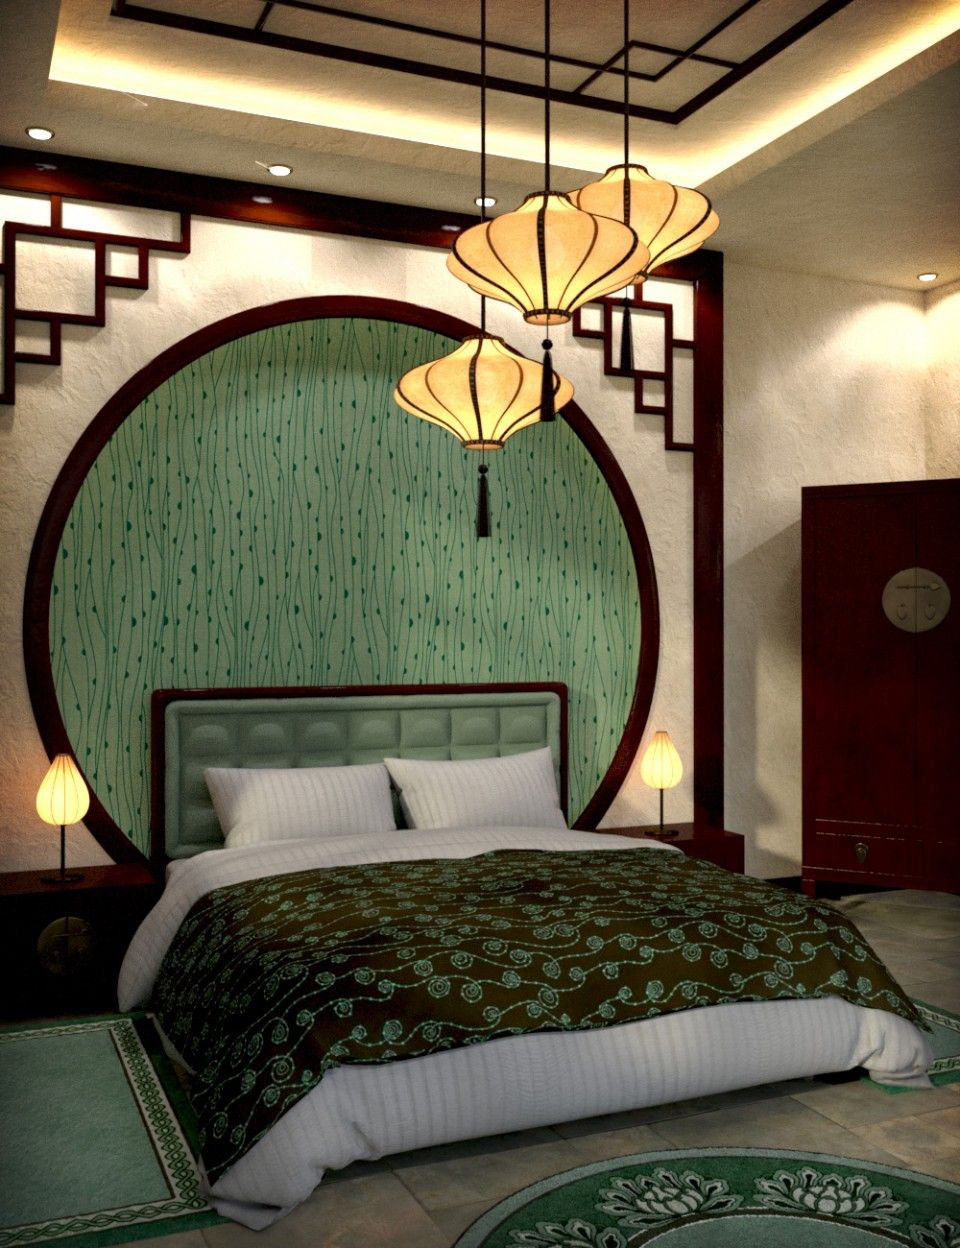 Modern chinese bedroom daz poser asian home decor - Modern japanese bedroom furniture ...